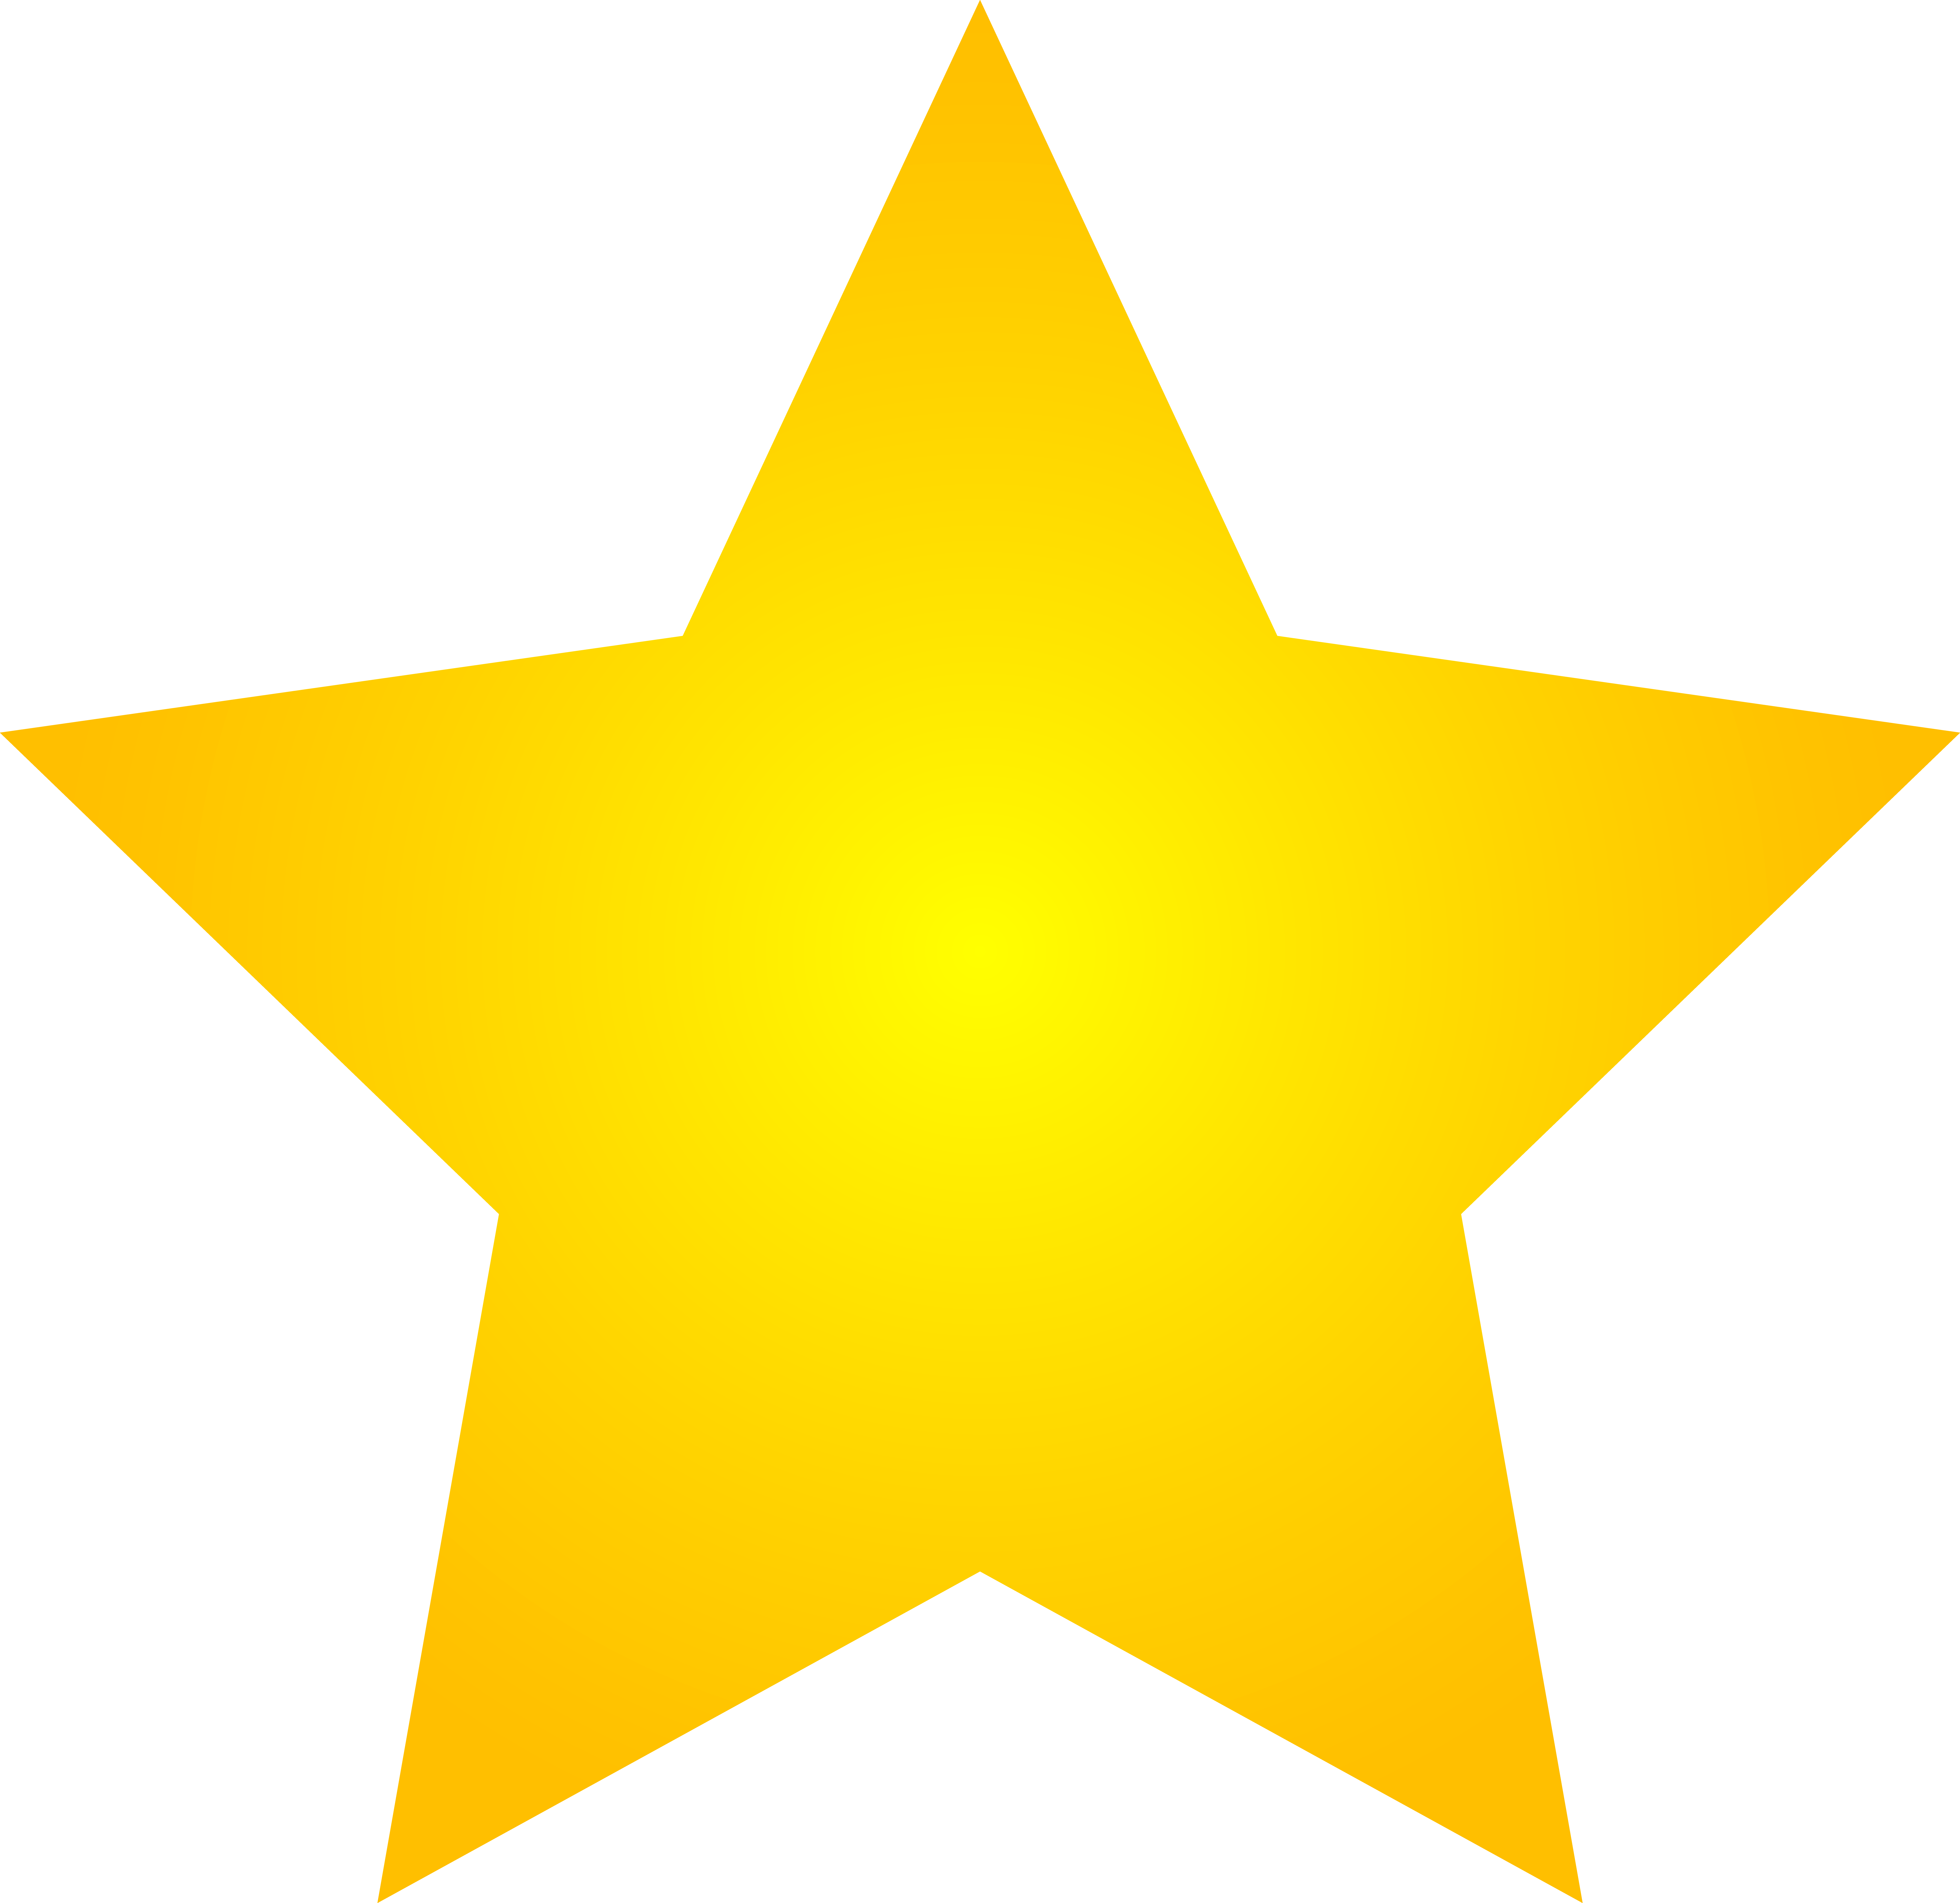 Great job star clipart image royalty free library Black Star Cliparts - Cliparts Zone image royalty free library